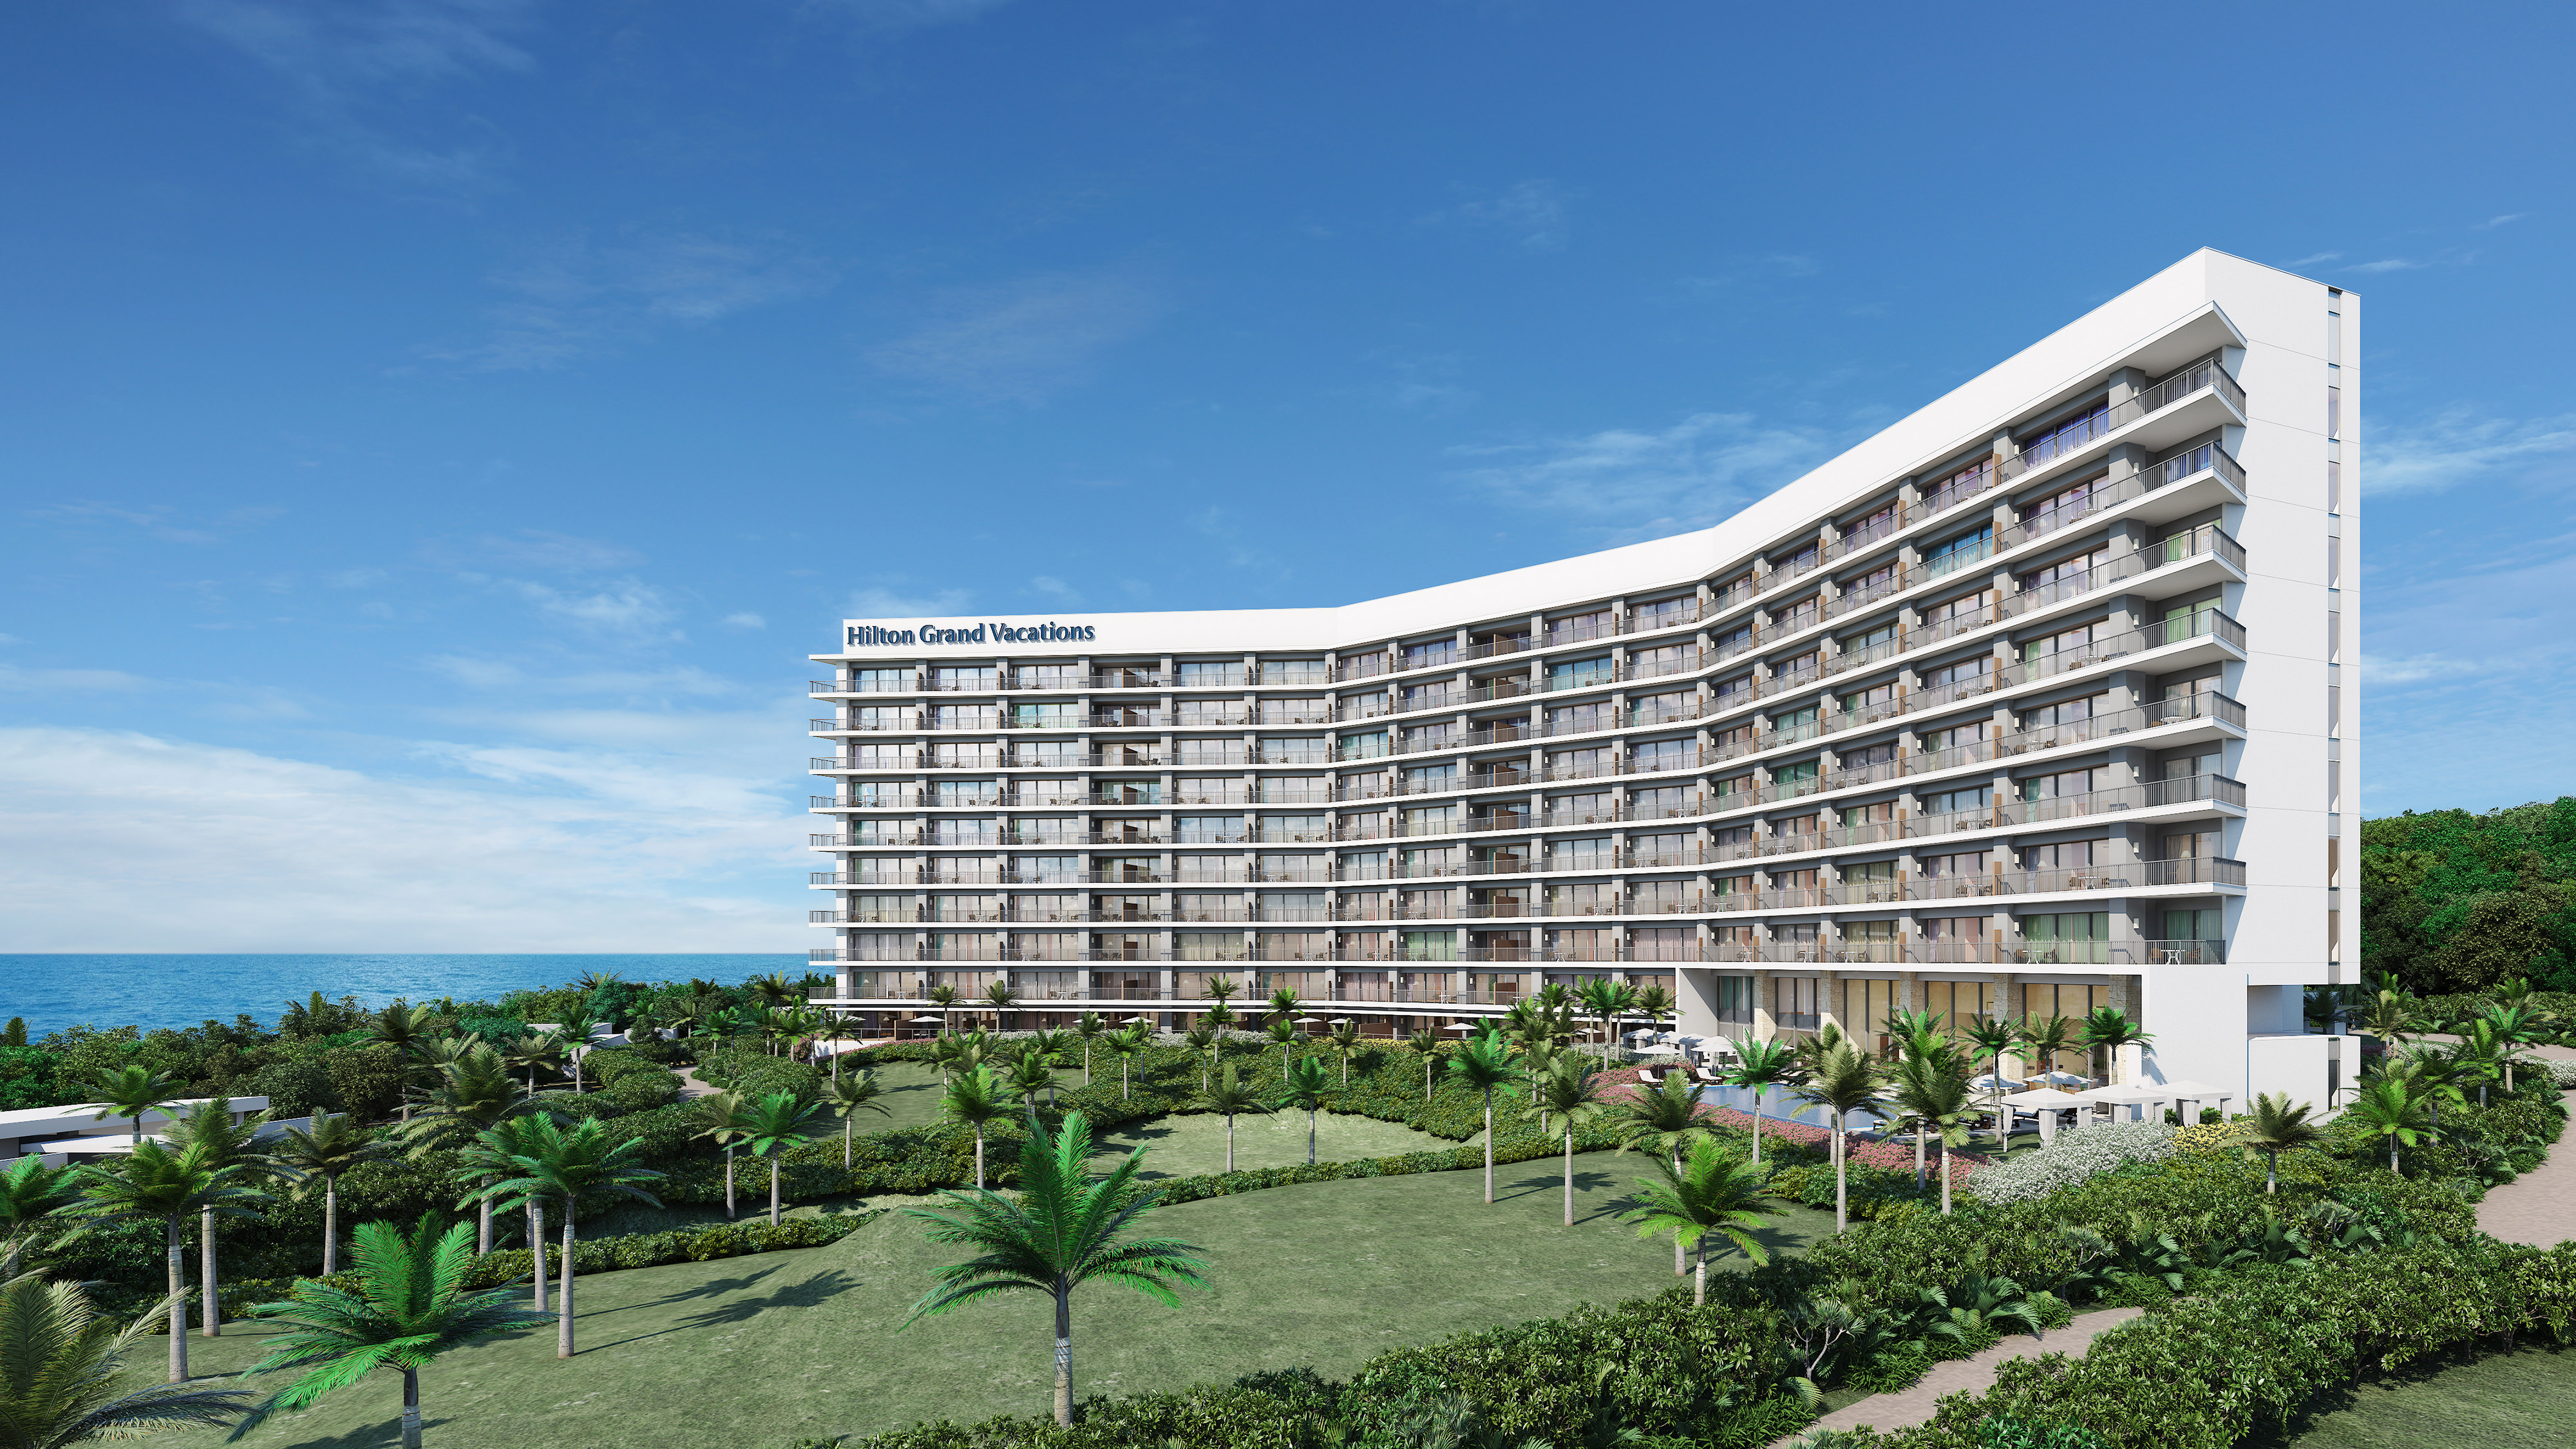 The Beach Resort Sesoko by Hilton Club opening in 2022 on the white-sand beaches of Okinawa's Sesoko Island.